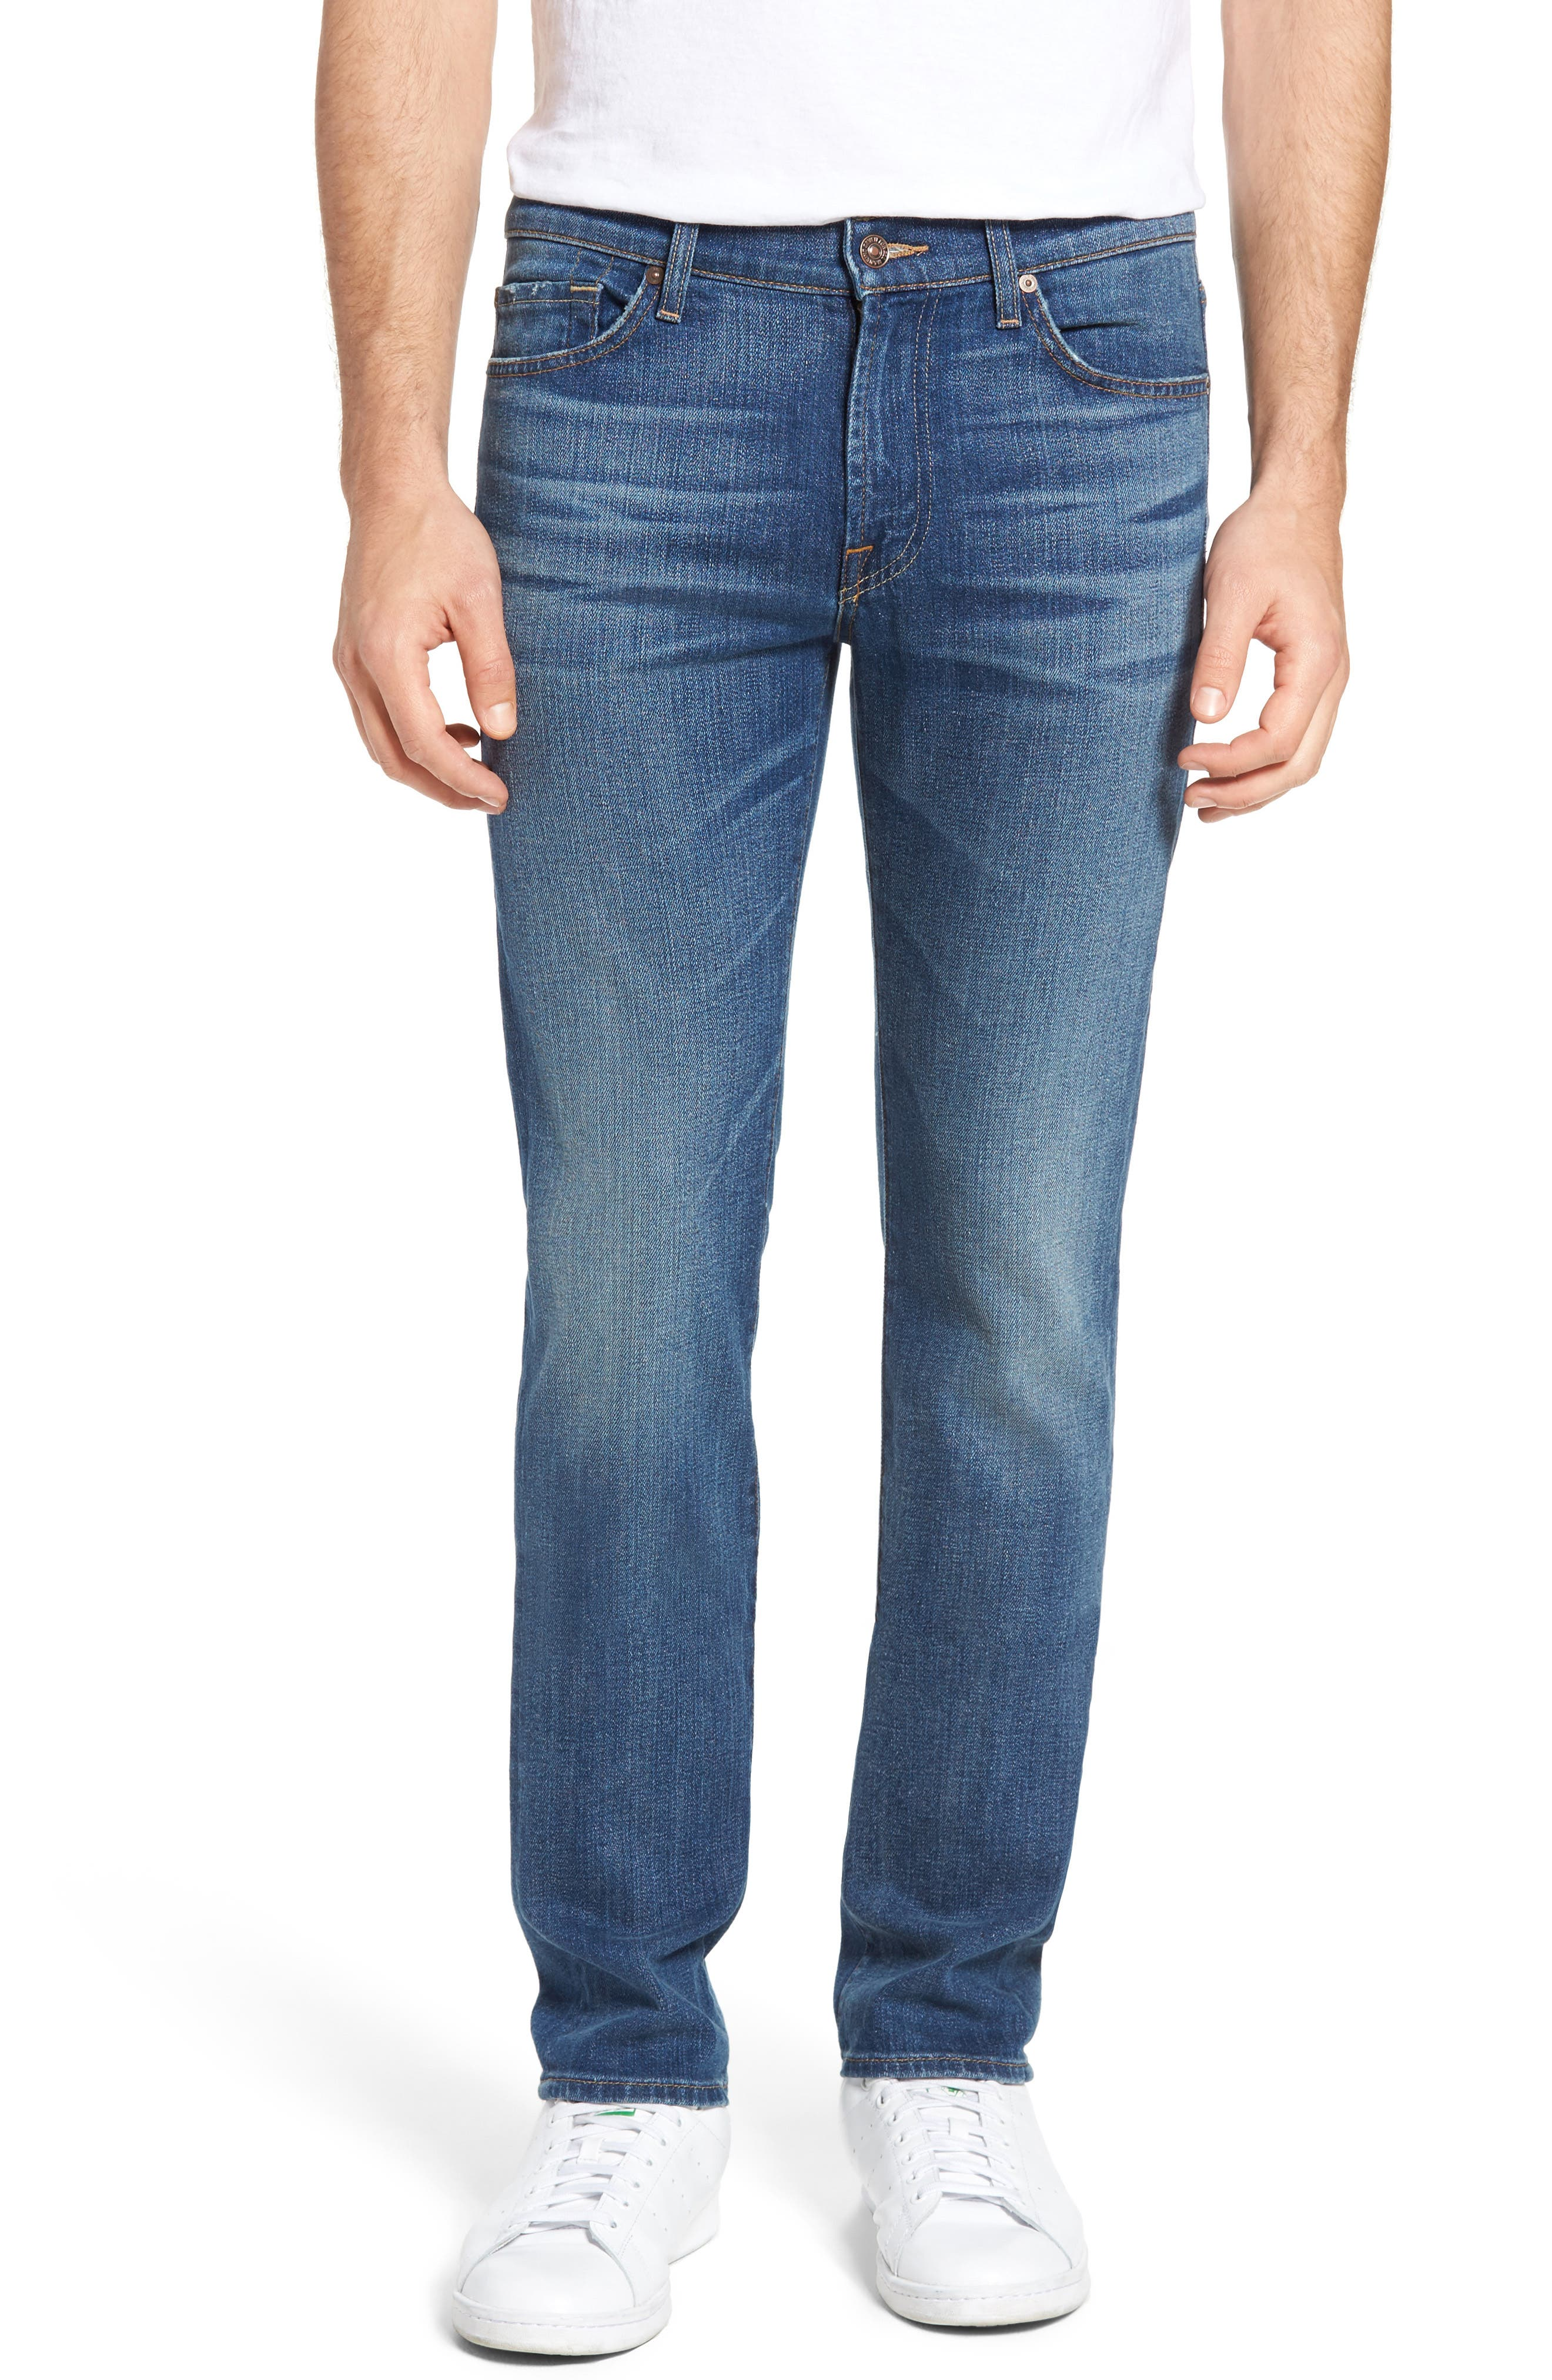 Main Image - 7 For All Mankind® Slimmy Slim Fit Jeans (Sixties Vintage)